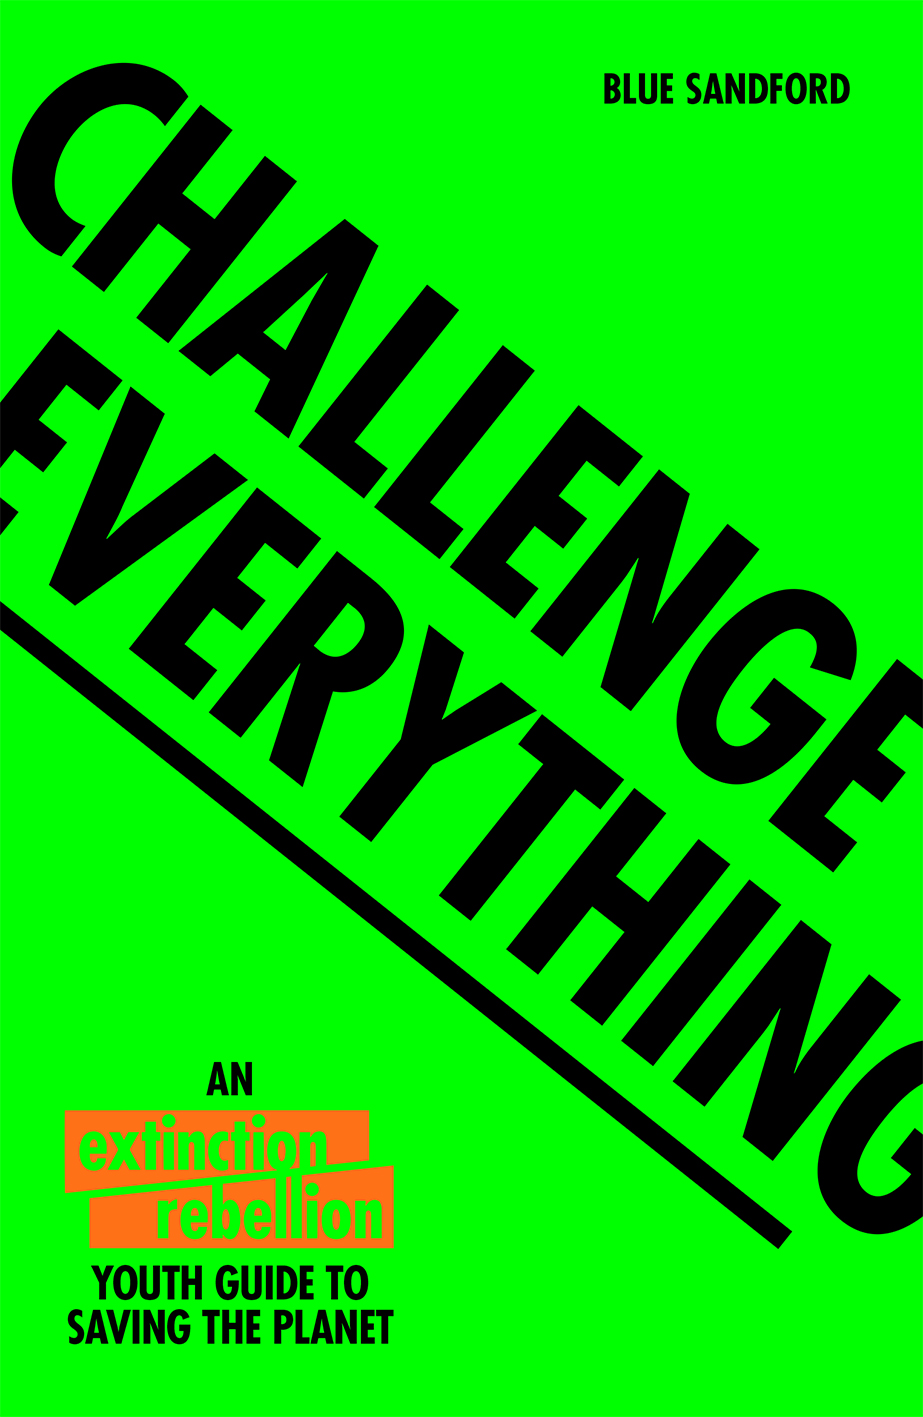 Challenge Everything